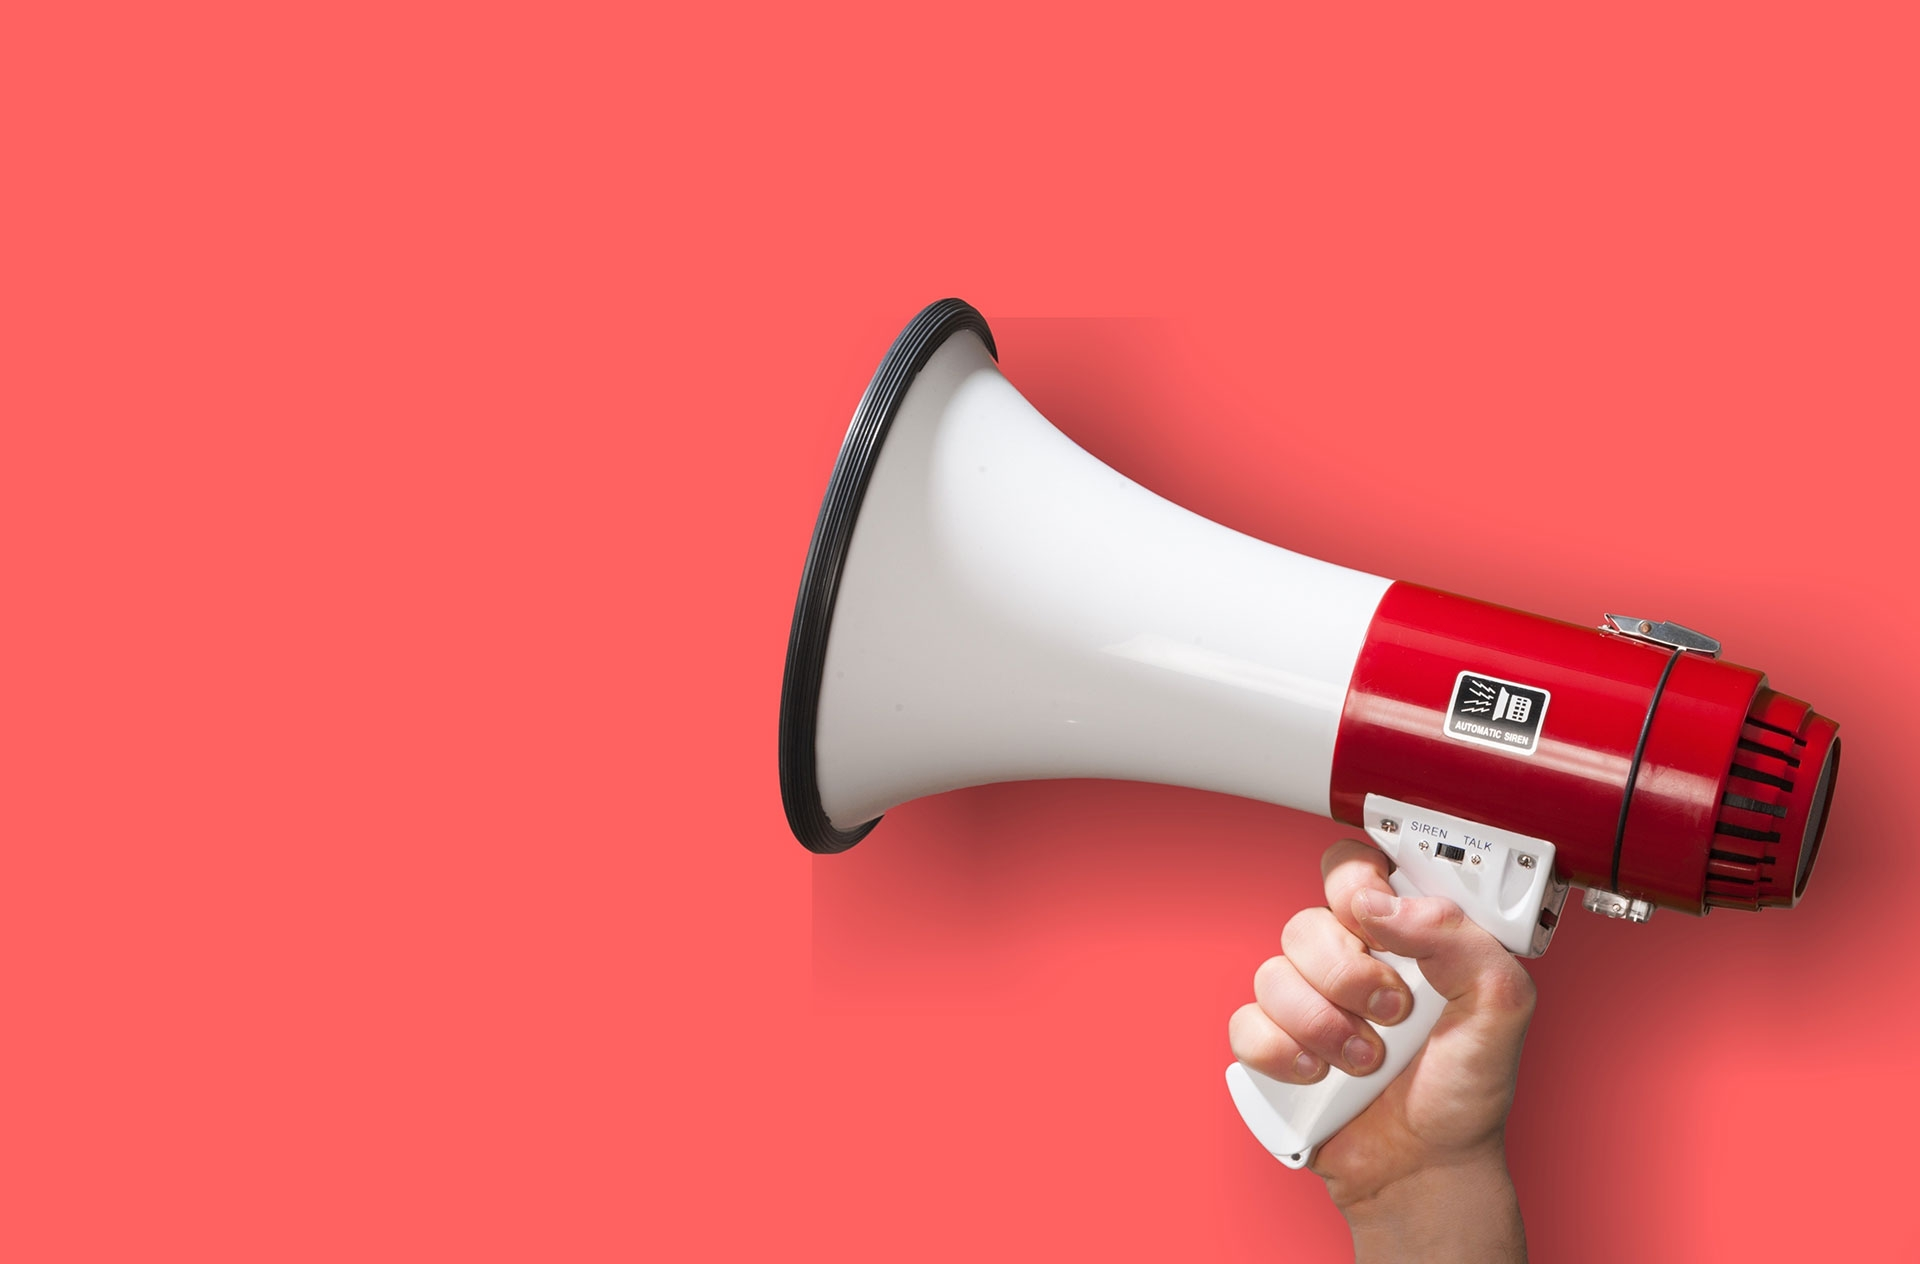 attention, announcement, hand holding megaphone on red background